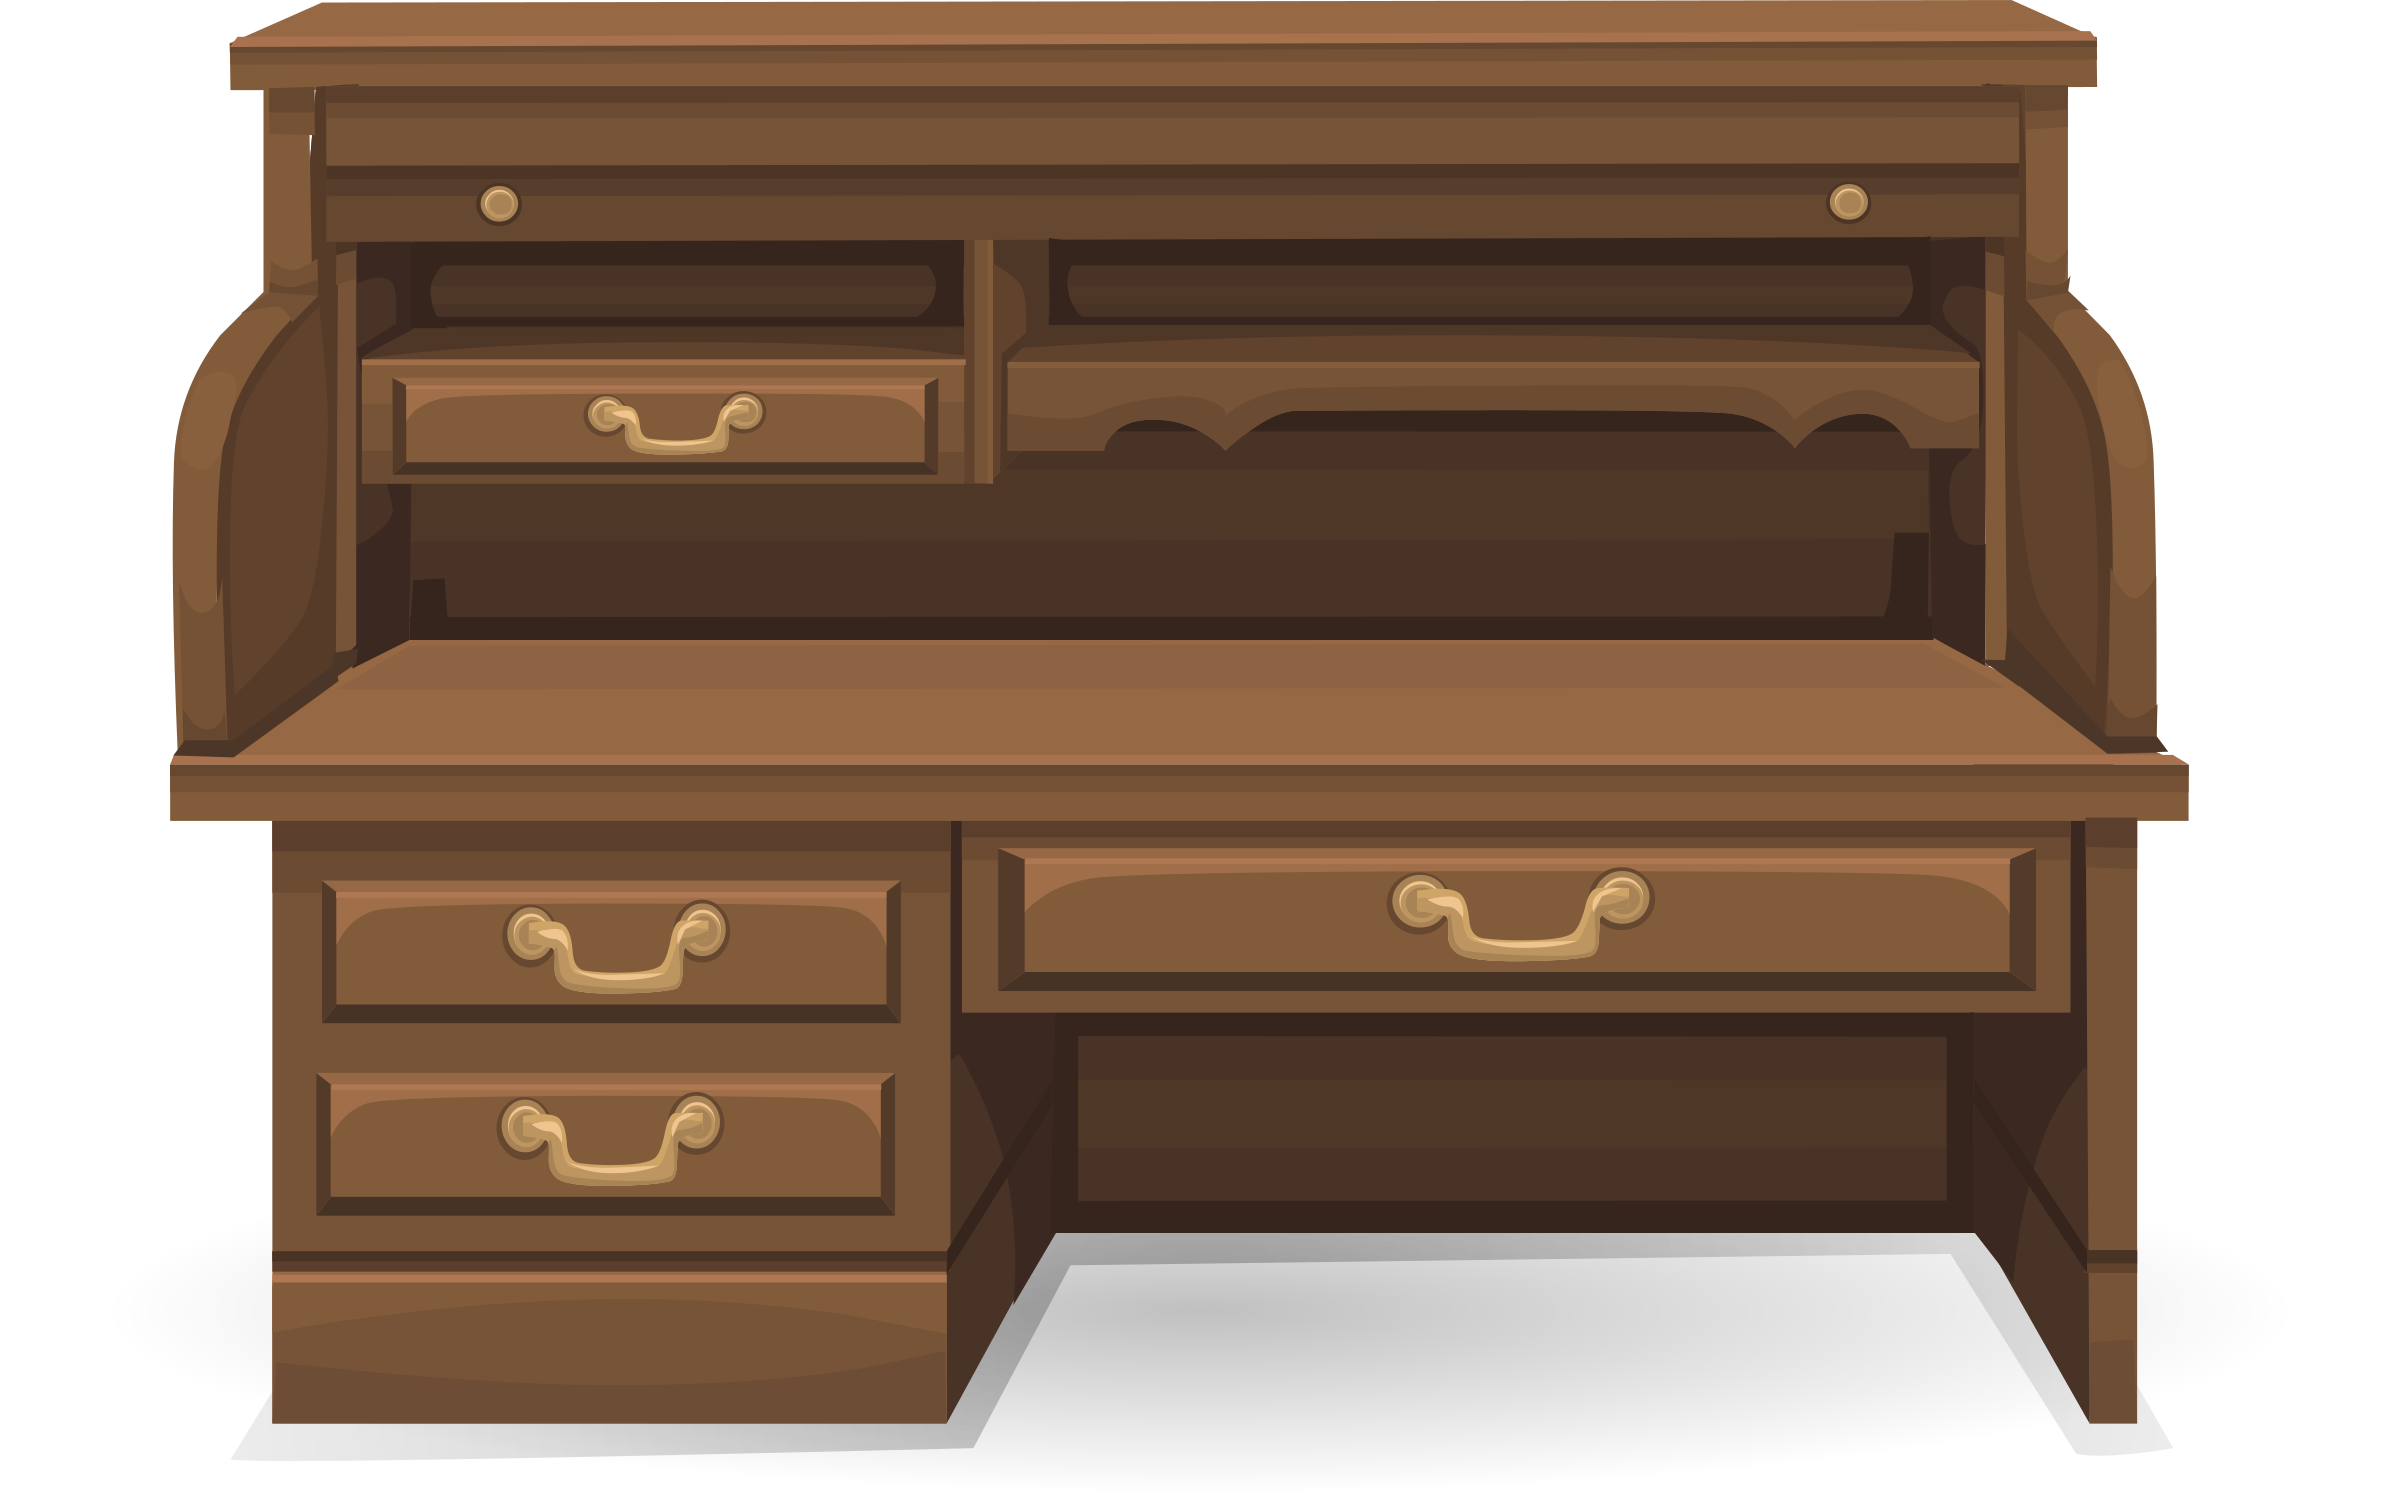 Clipart Roll Top Desk From Glitch